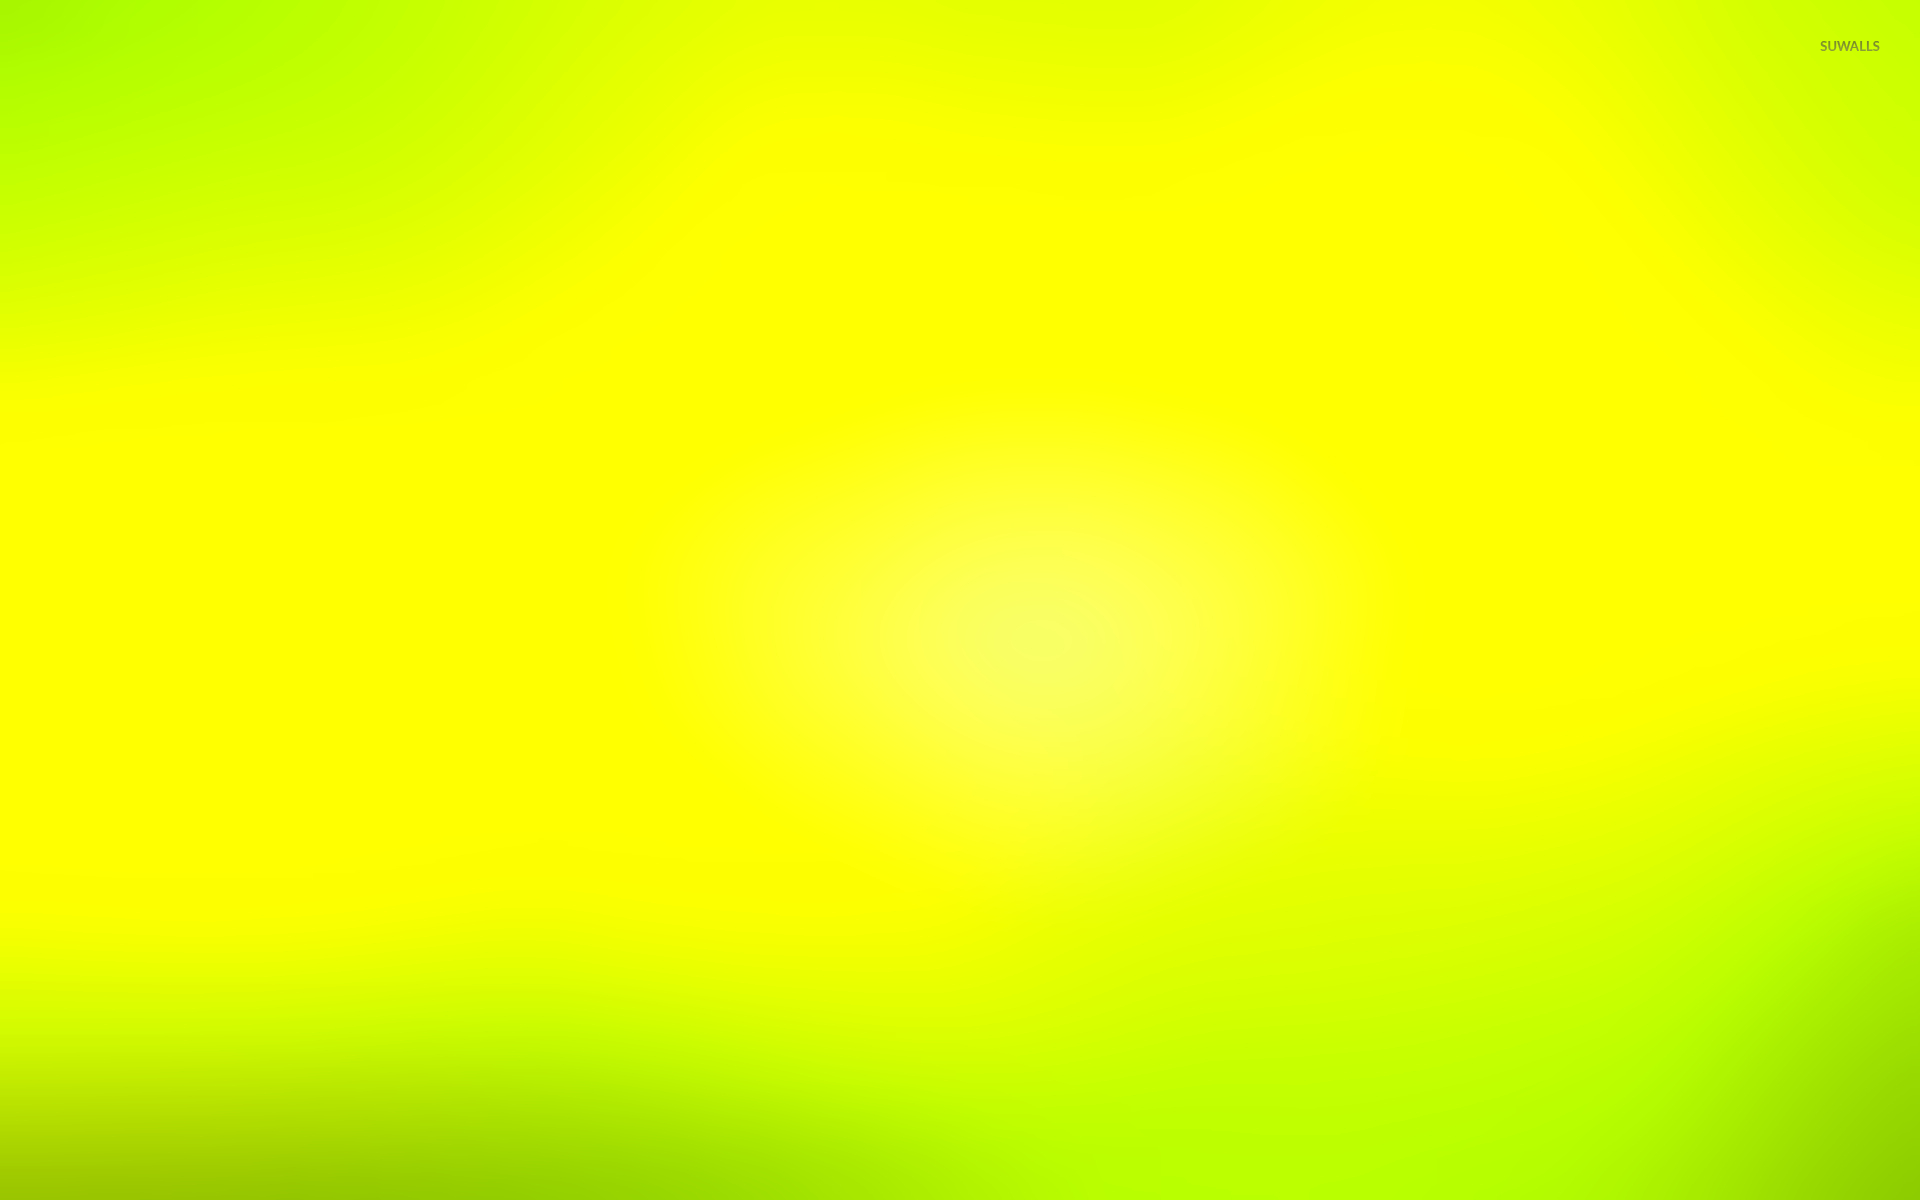 Yellow gradient wallpaper - Abstract wallpapers - #26949